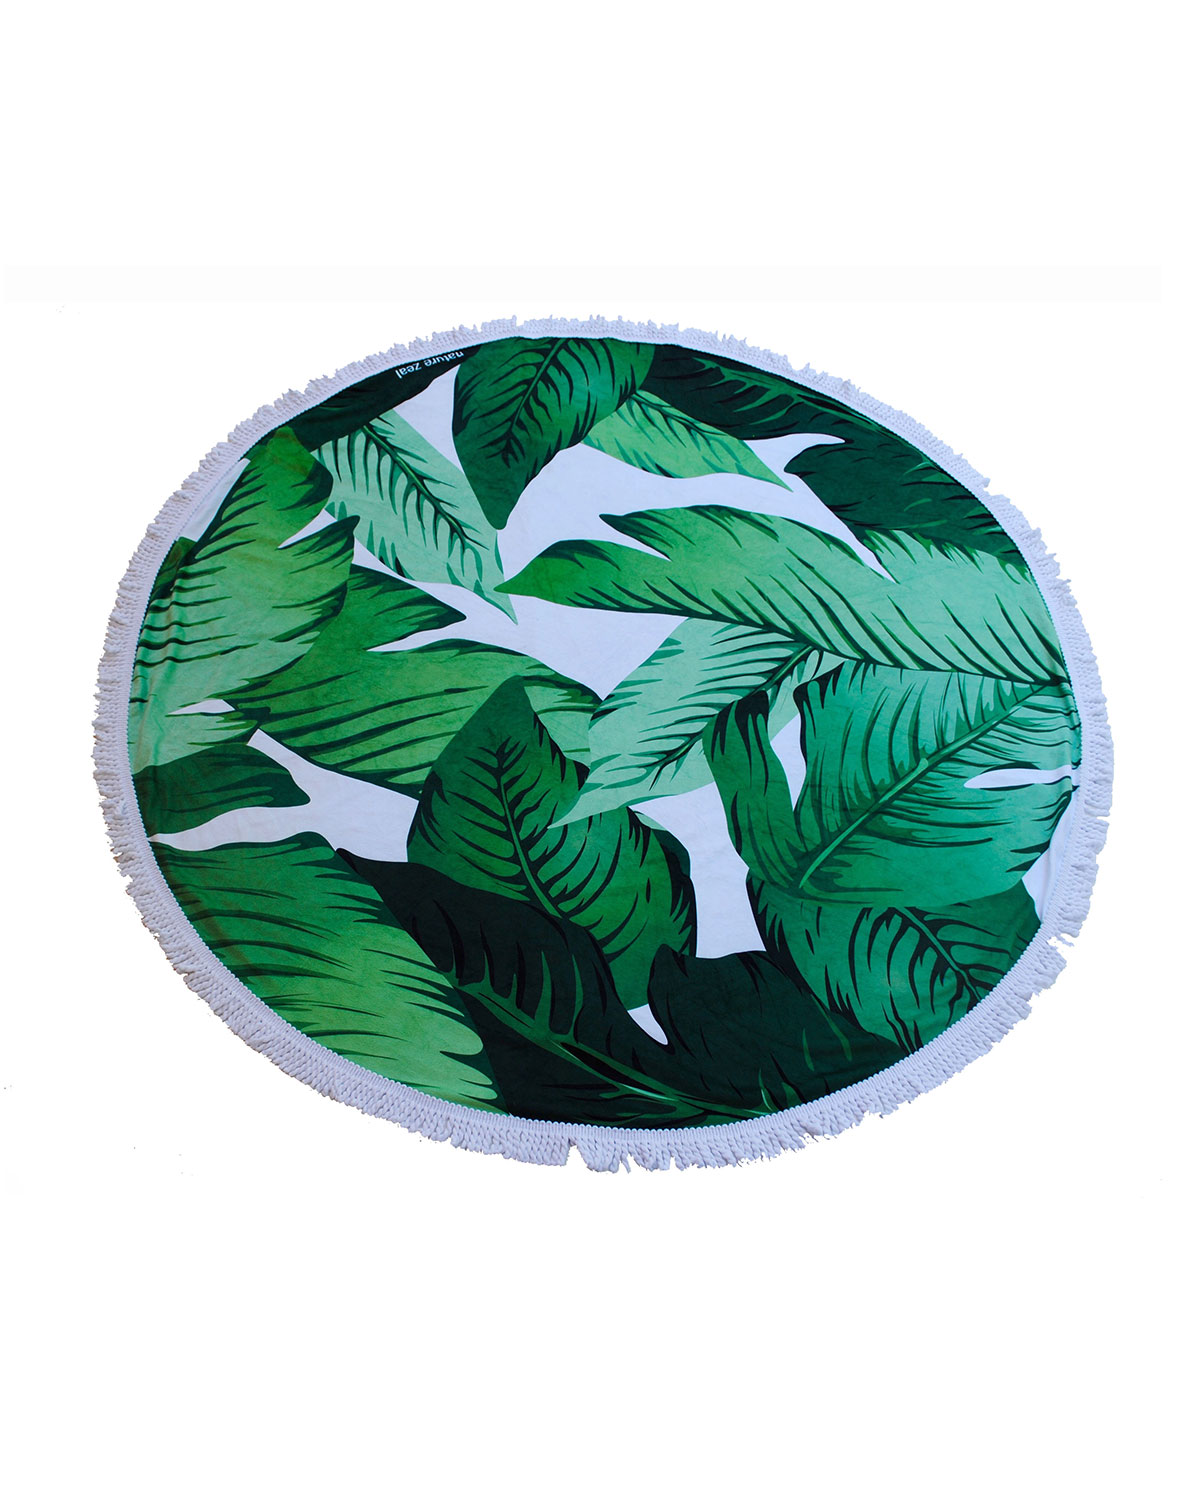 Yoga Zeal Banana Leaf Round Beach Towel